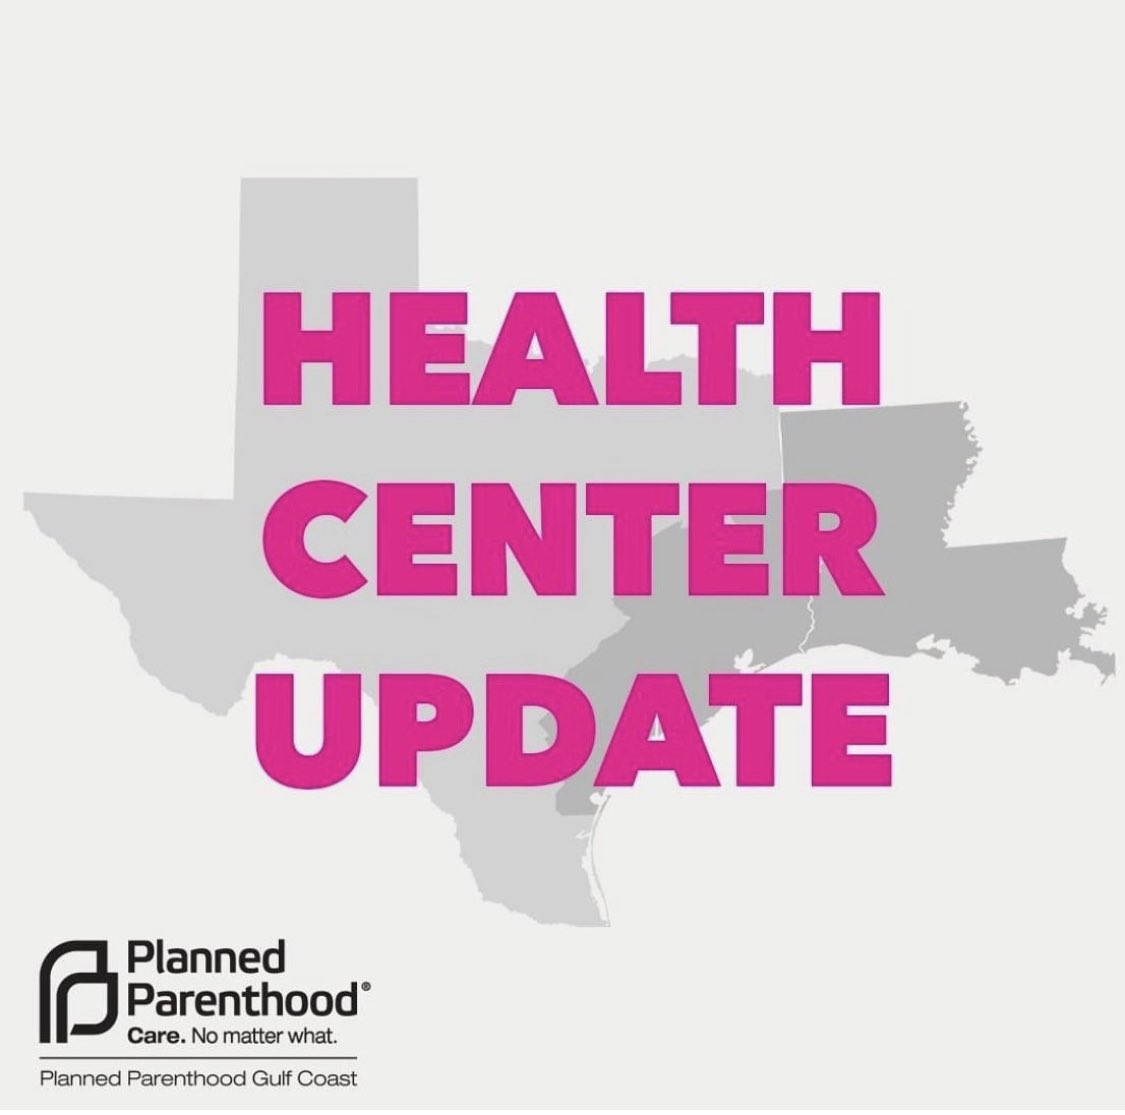 🚨WEATHER UPDATE:🚨 Due to power outages, all PPGC Texas health centers and admin offices will remain CLOSED Wed., 2/17 & Thurs., 2/18. Louisiana health centers will also be closed Wed., 2/17. Stay safe, everyone.